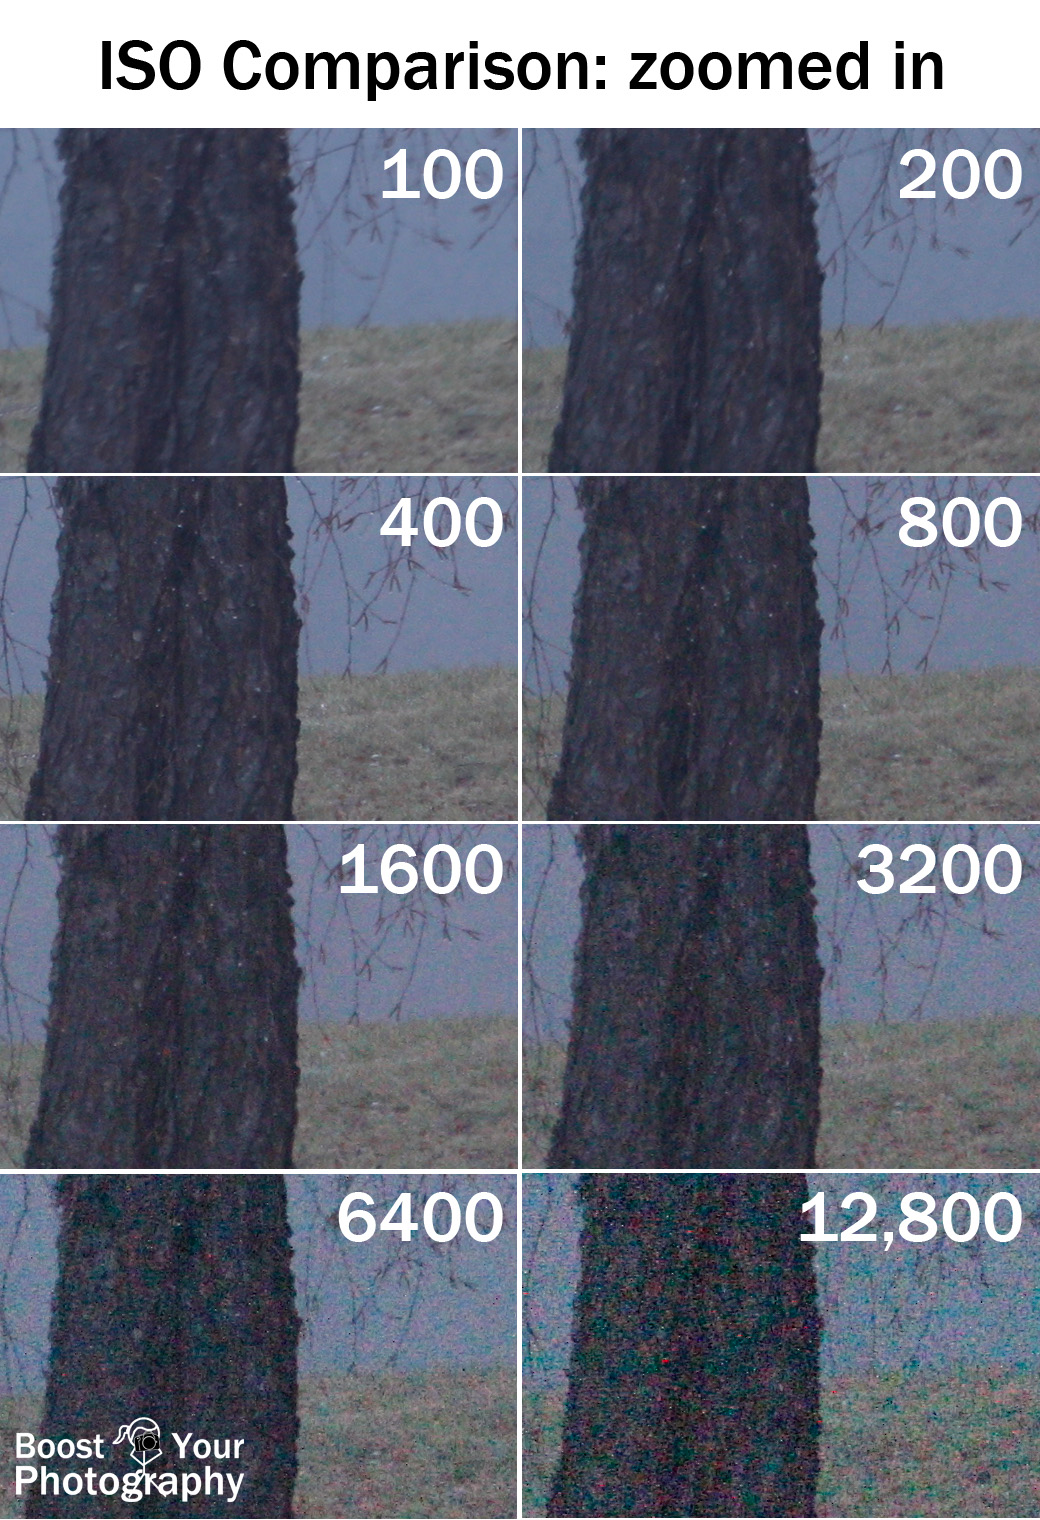 ISO Comparison Zoomed In | Boost Your Photography